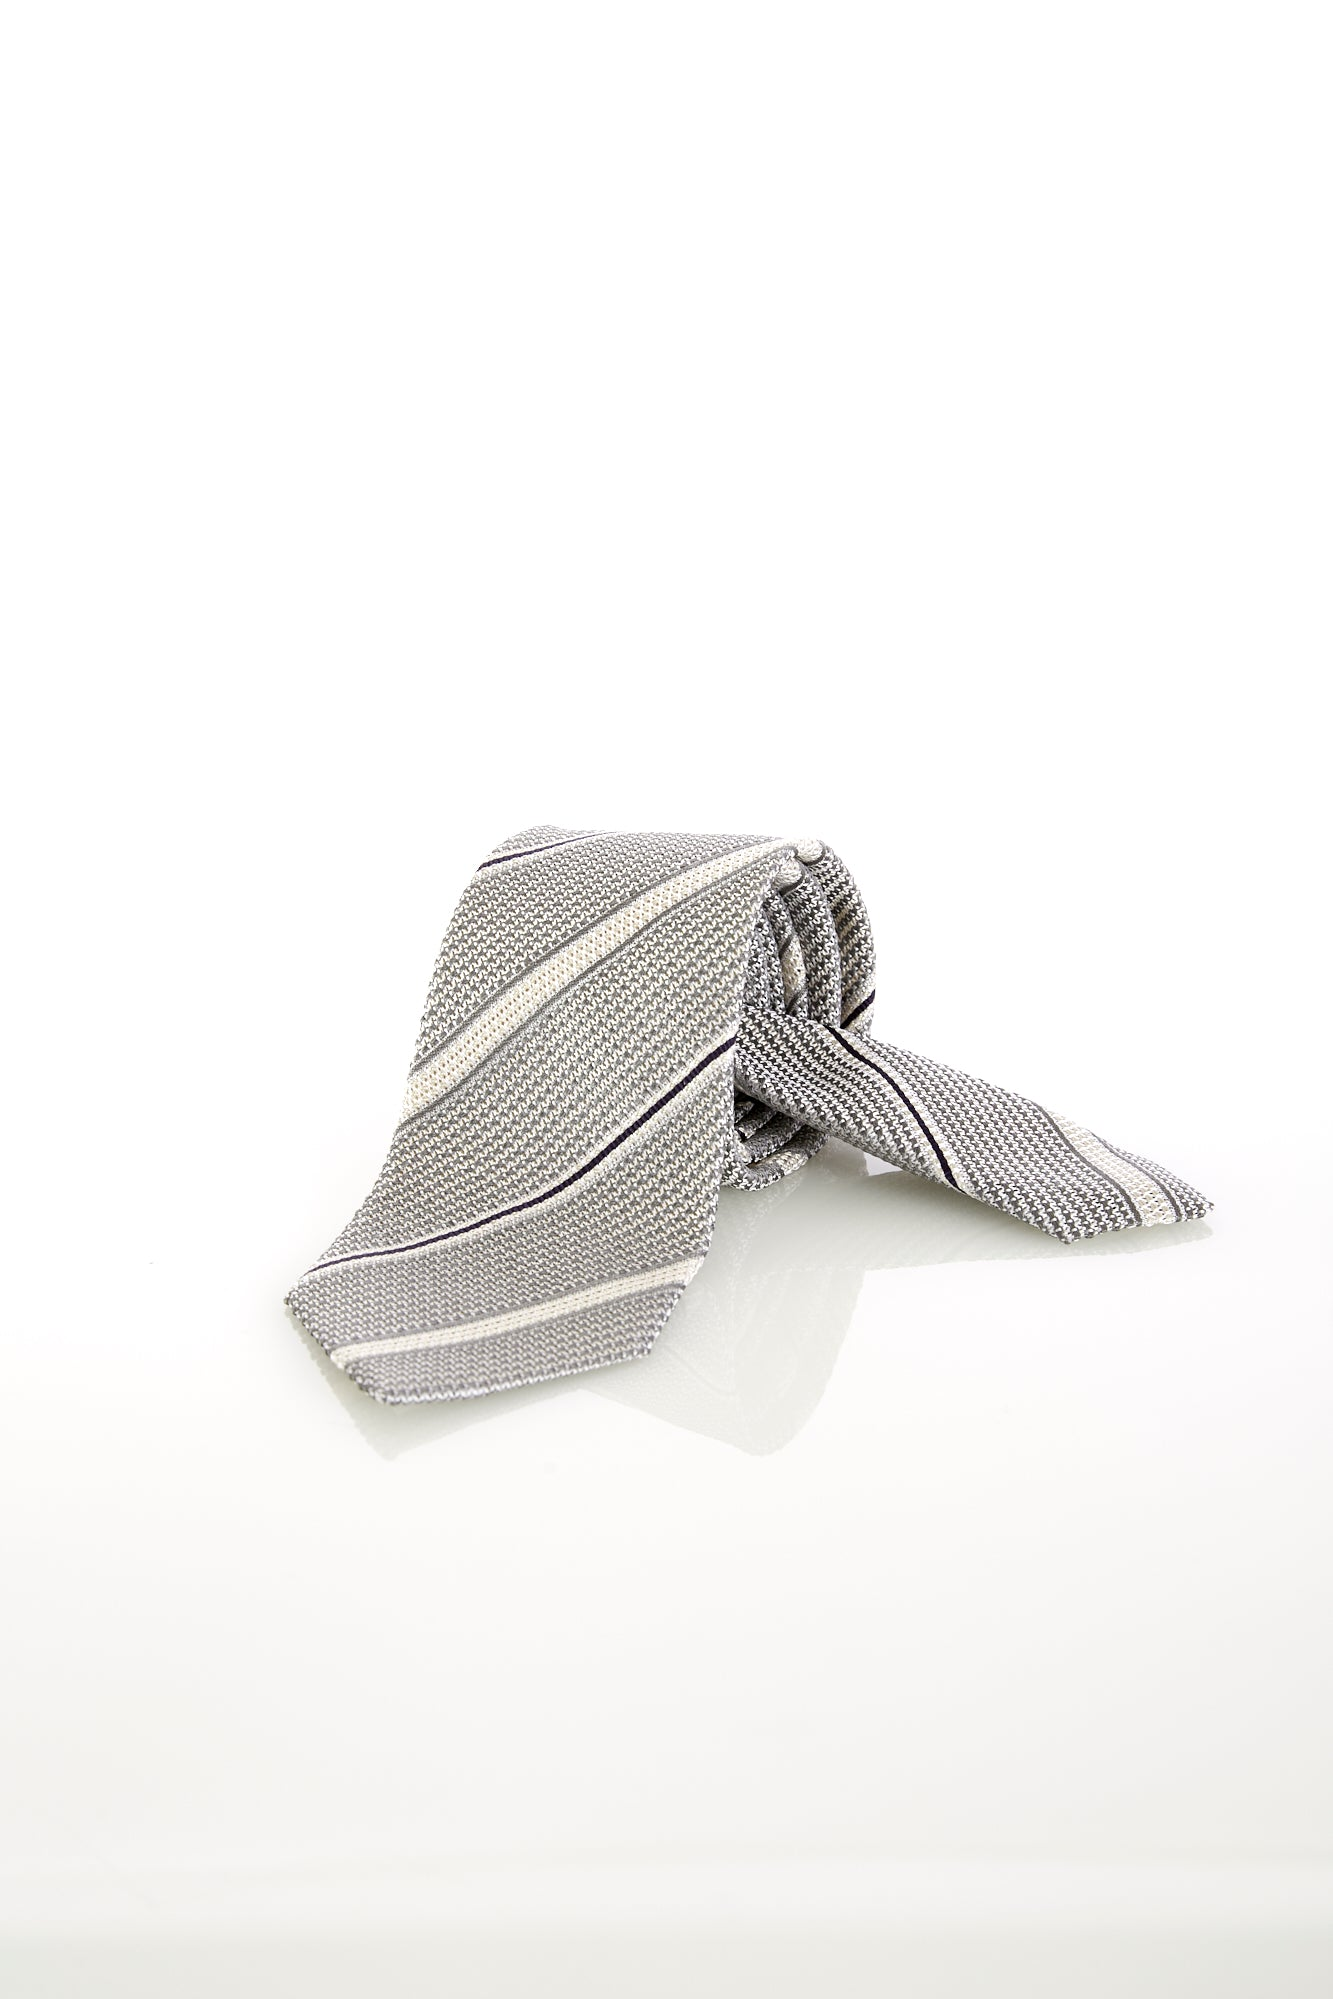 Drake's Silver and White Prep Stripe Silk Tie - Ties - Drake's - LALONDE's